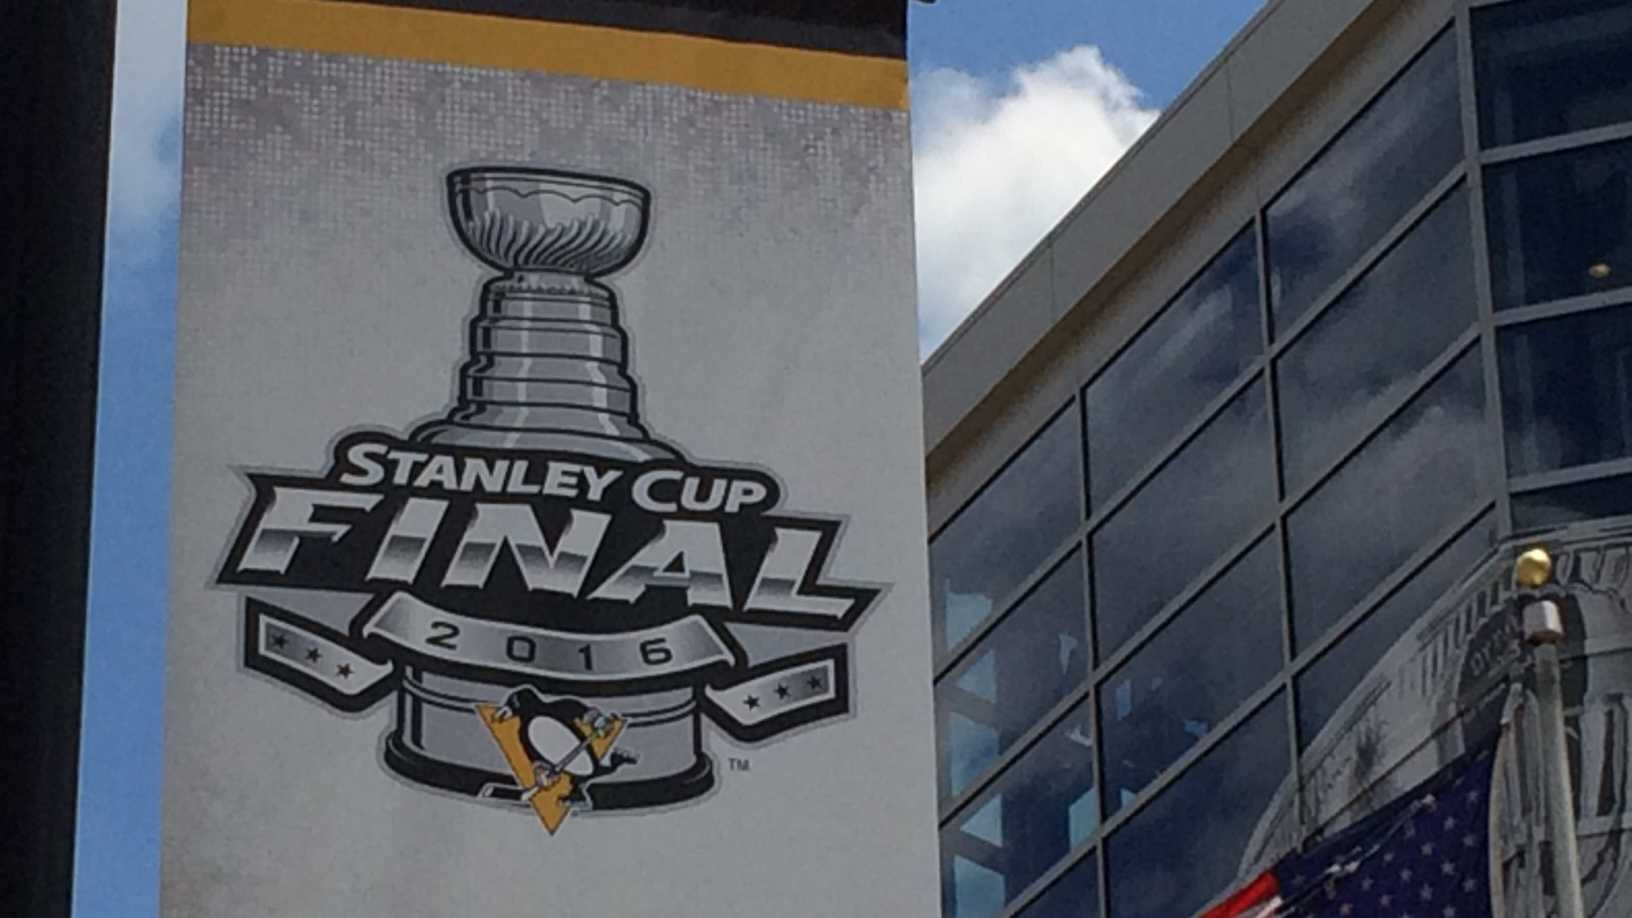 Stanley Cup Final banner outside arena